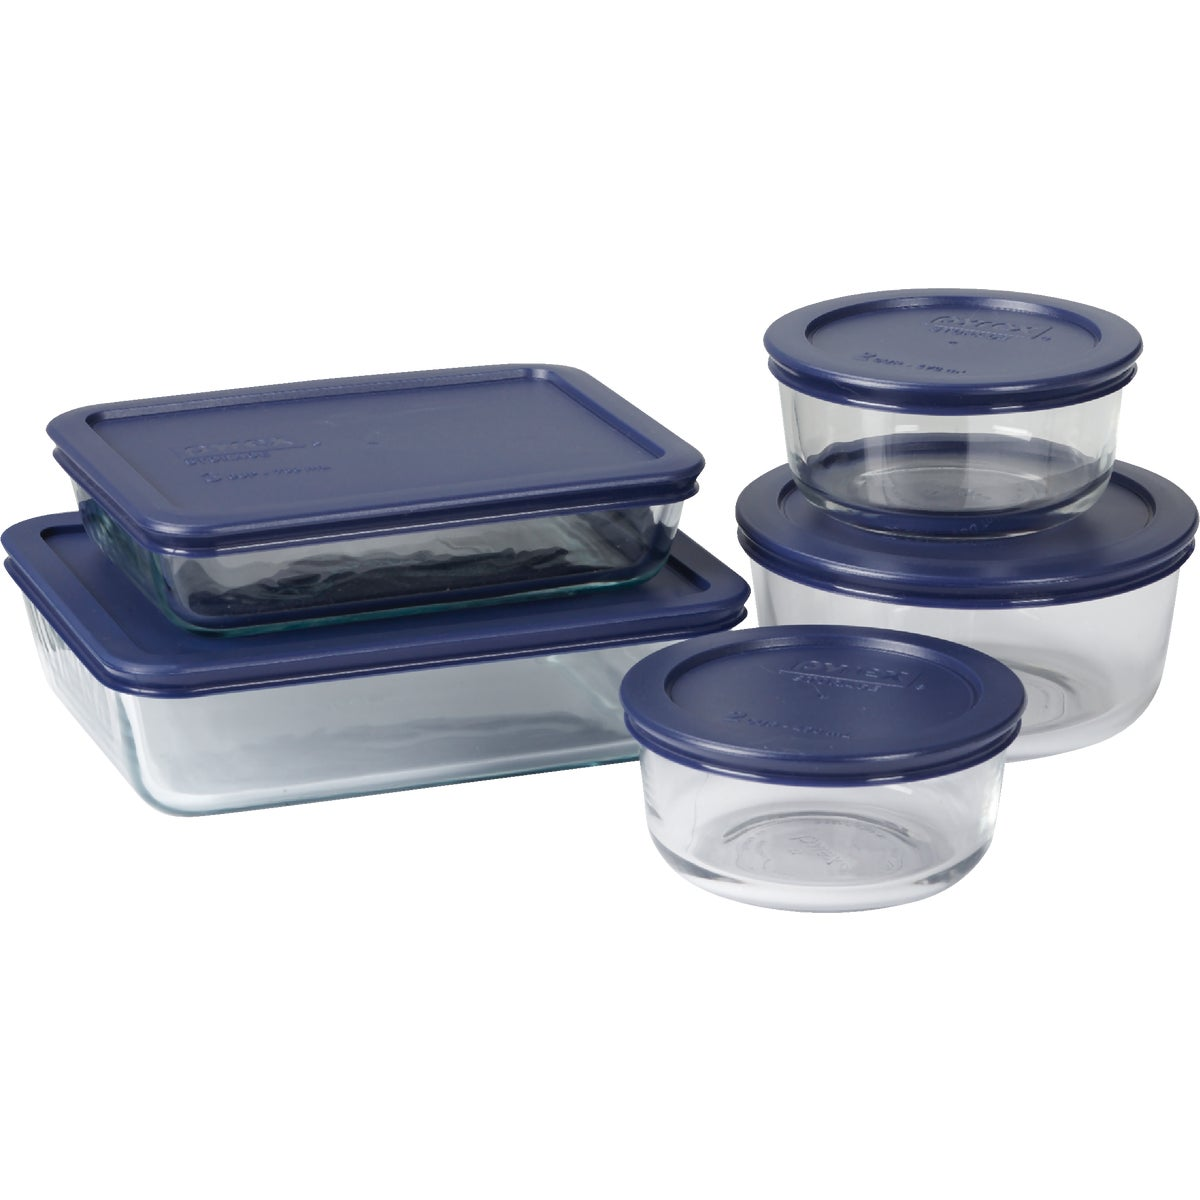 10PC PYREX STORAGE SET - 6021224 by World Kitchen